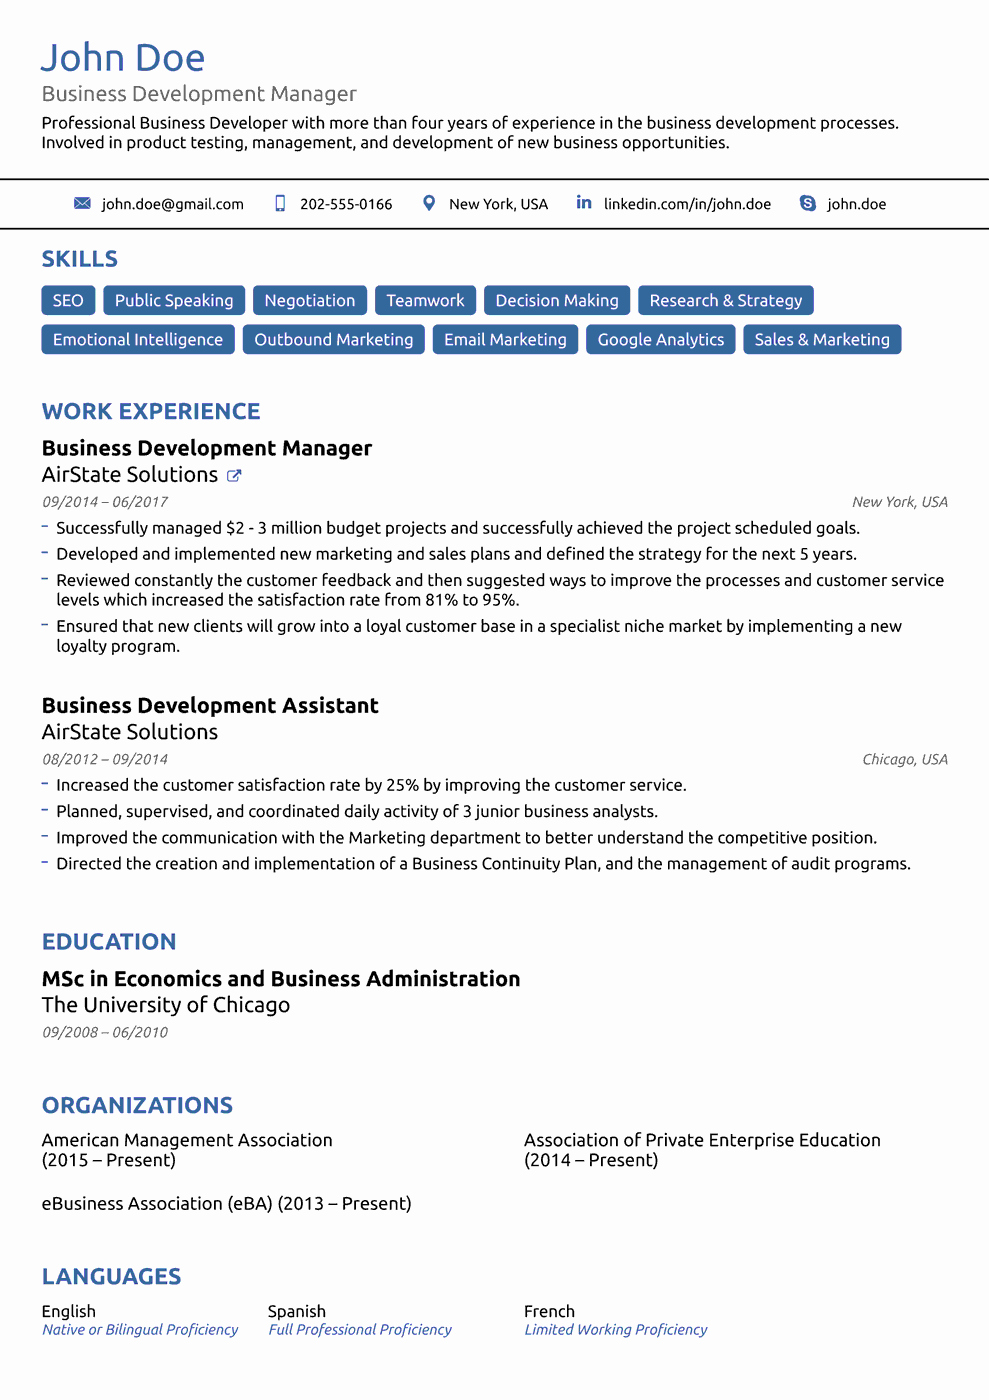 Free Resume Templates and Downloads Luxury 8 Best Line Resume Templates Of 2018 [download & Customize]